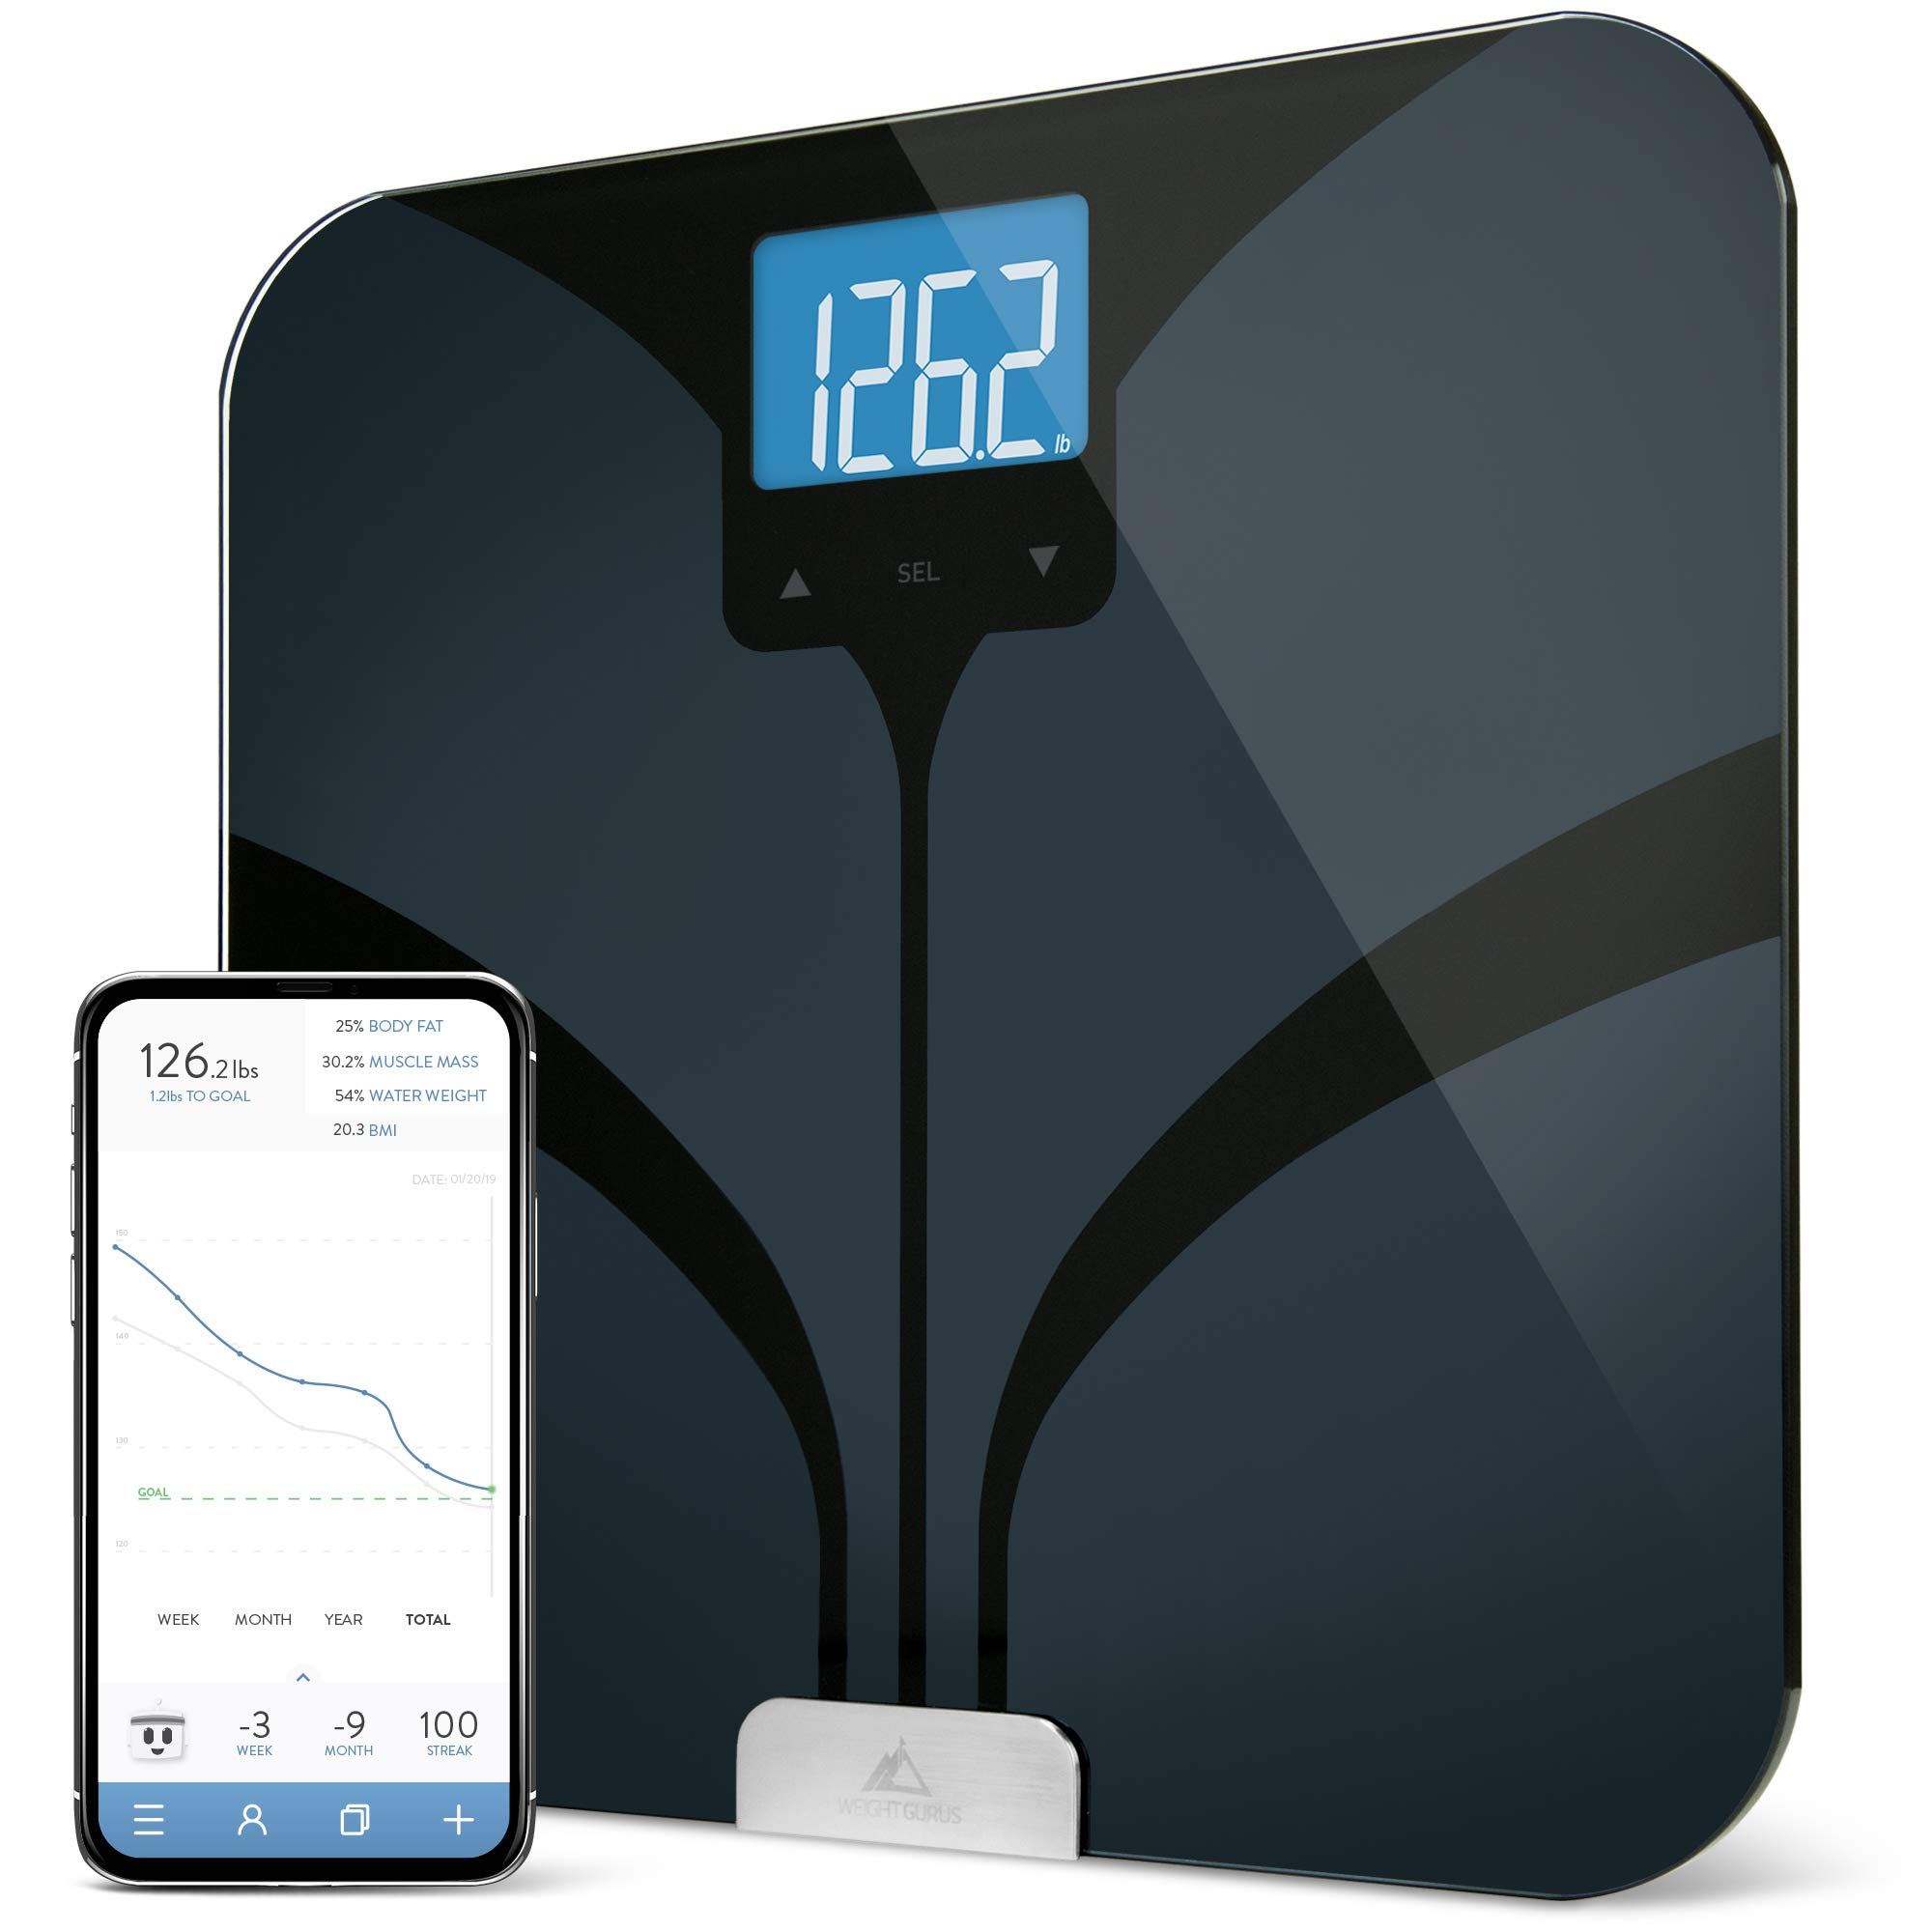 Bluetooth Smart Body Fat Scale by GreaterGoods (Bluetooth New)